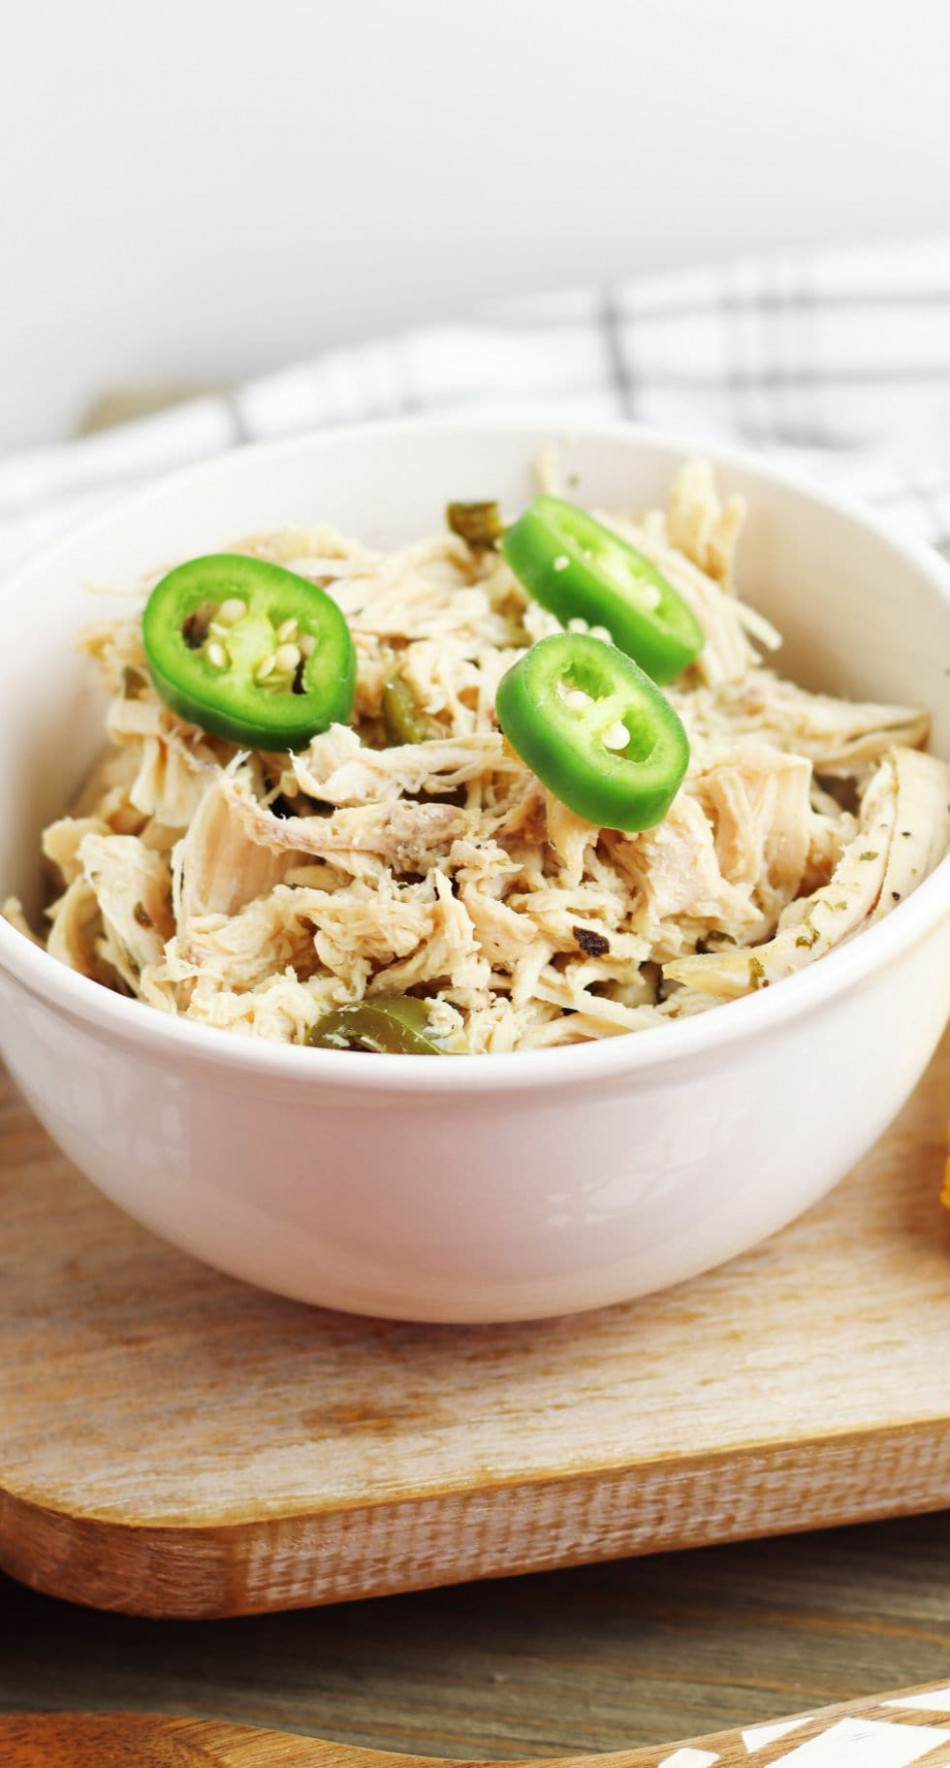 Keto Coconut Curry Lime Shredded Chicken - instant pot keto recipes chicken